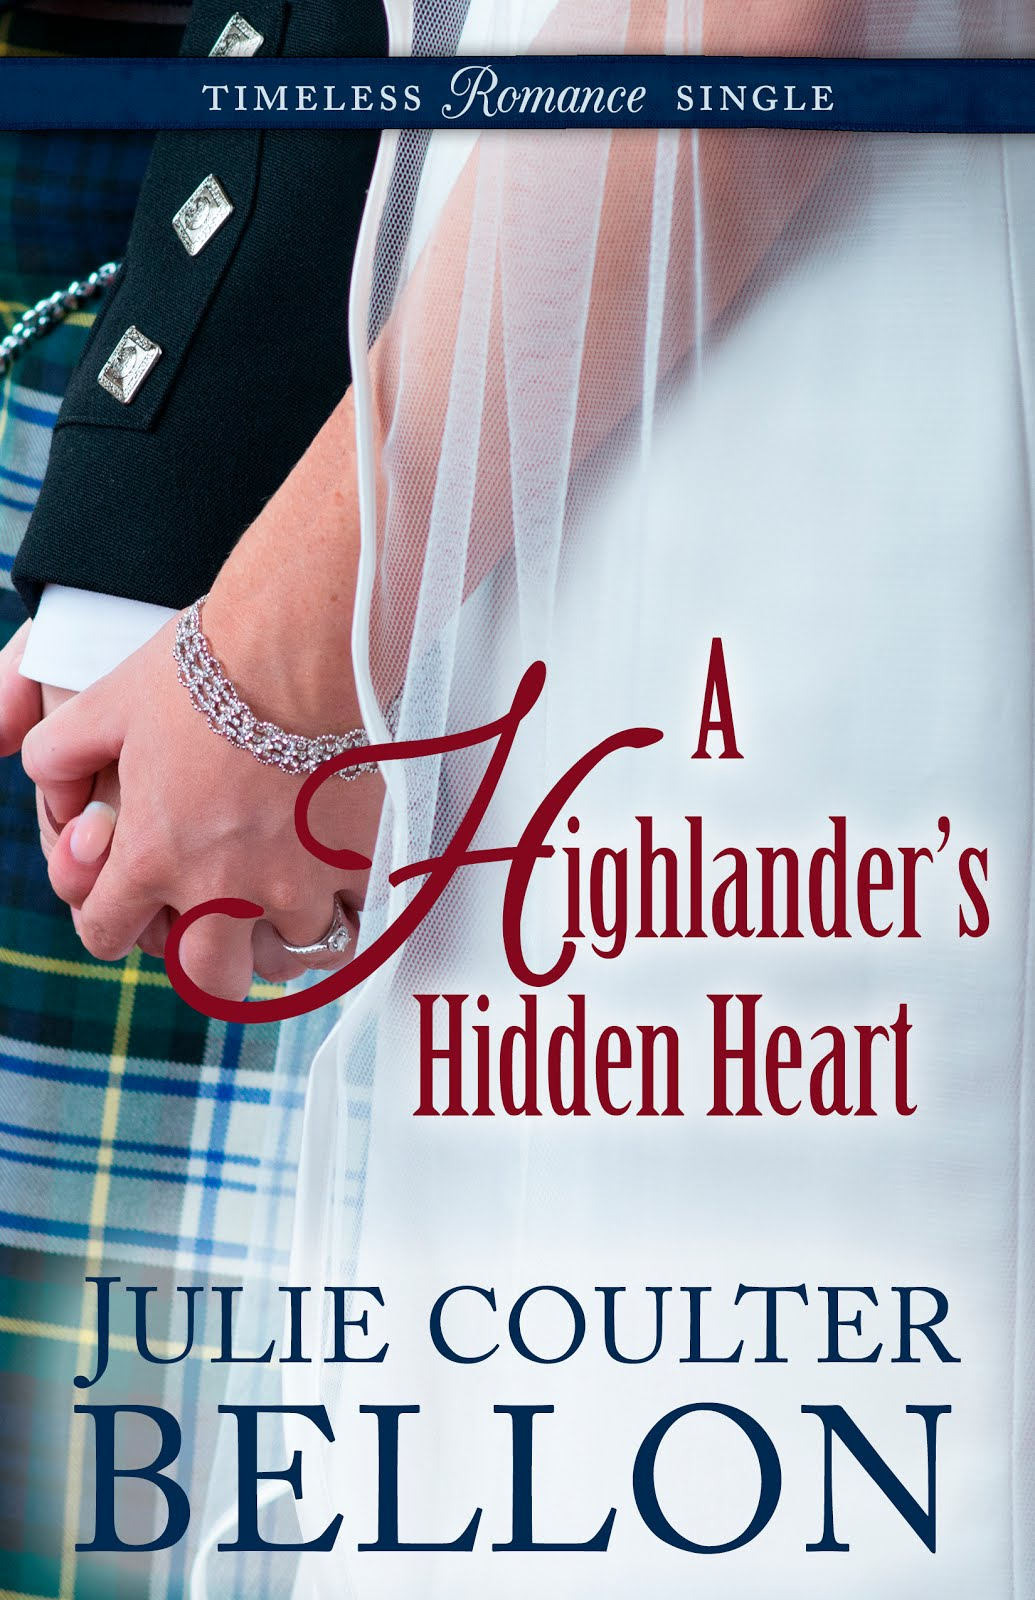 Coming in April! A Highlander's Hidden Heart